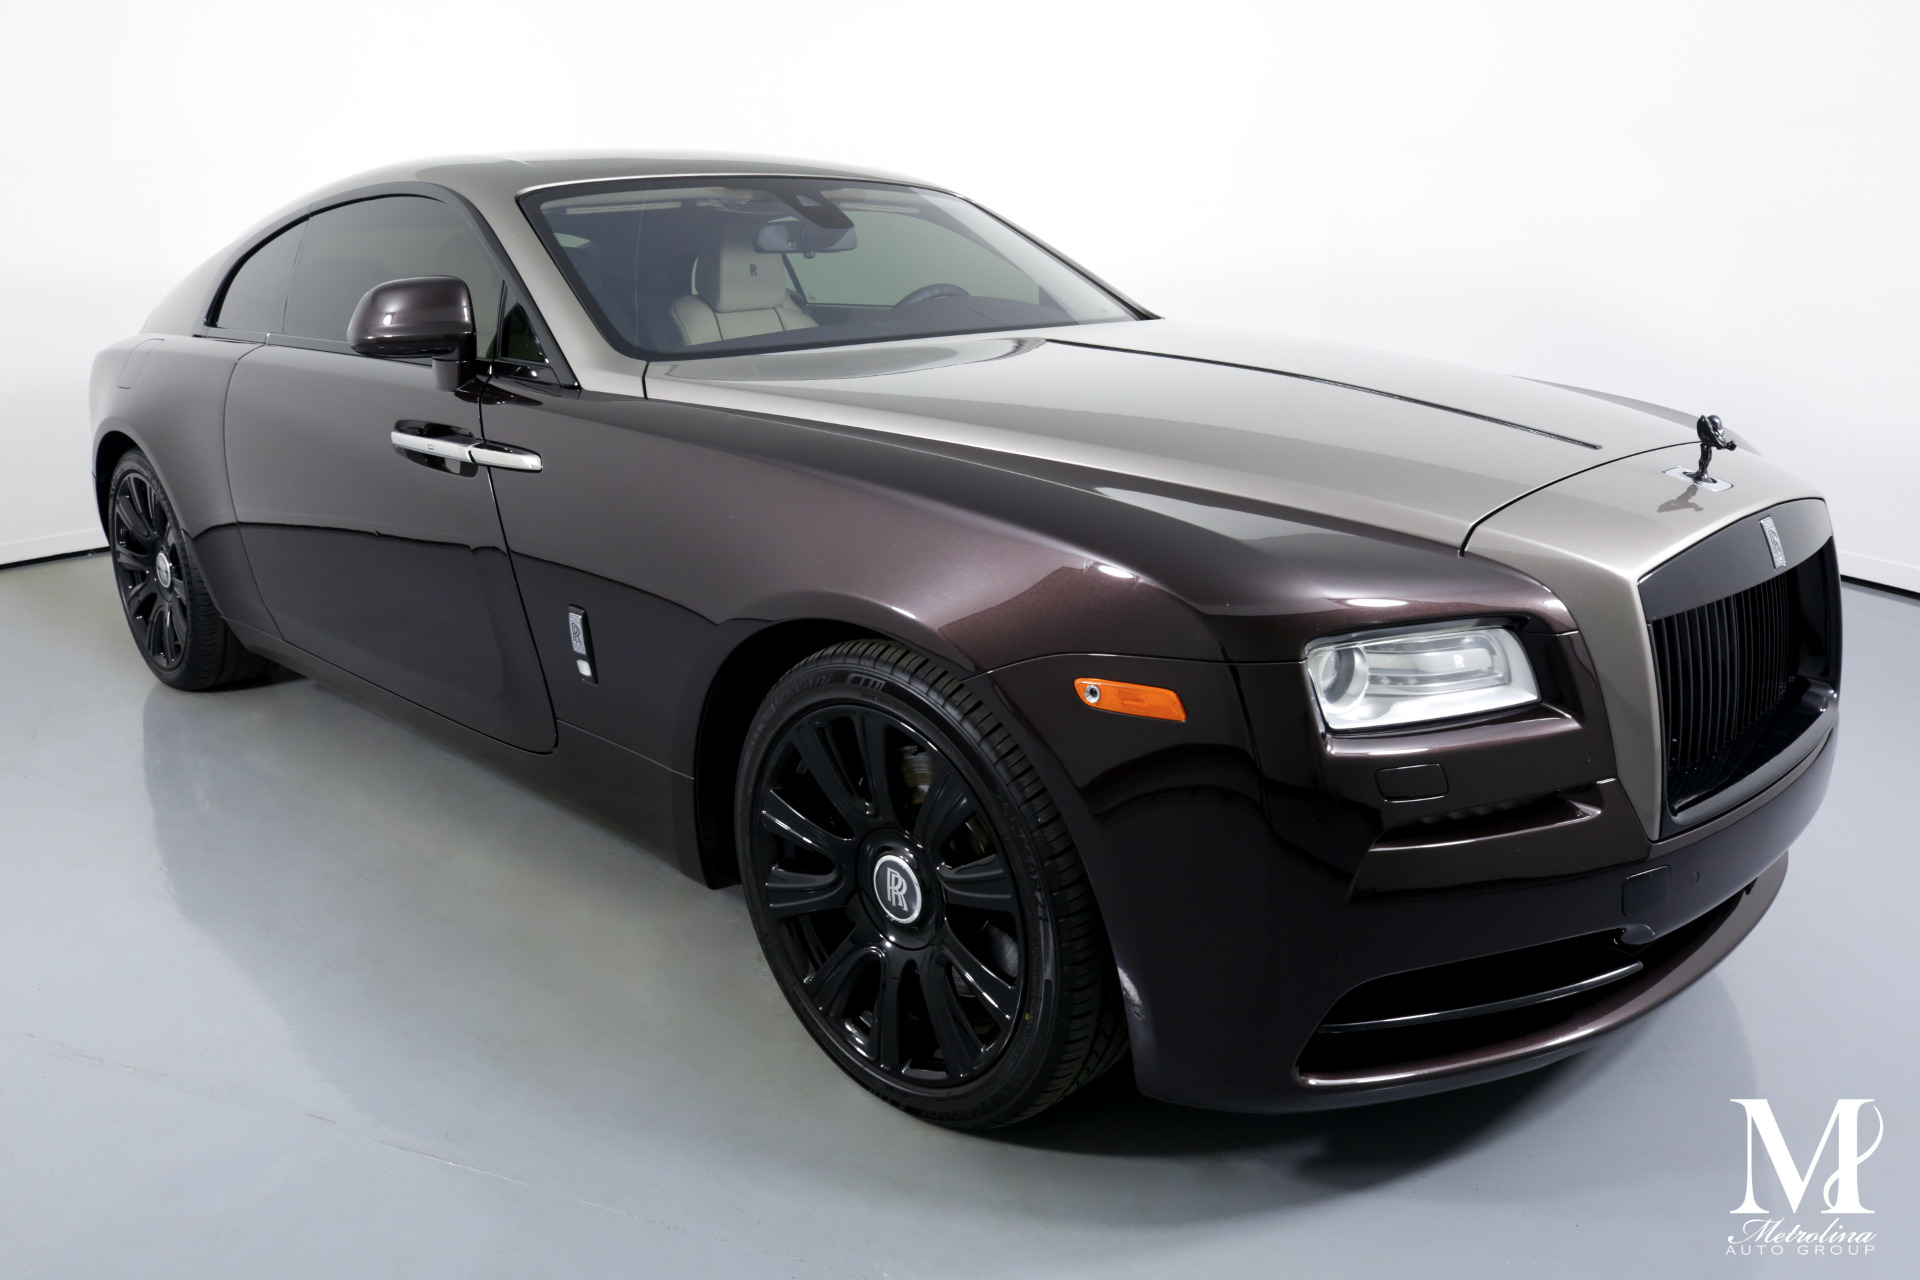 Used 2014 Rolls-Royce Wraith for sale Sold at Metrolina Auto Group in Charlotte NC 28217 - 2